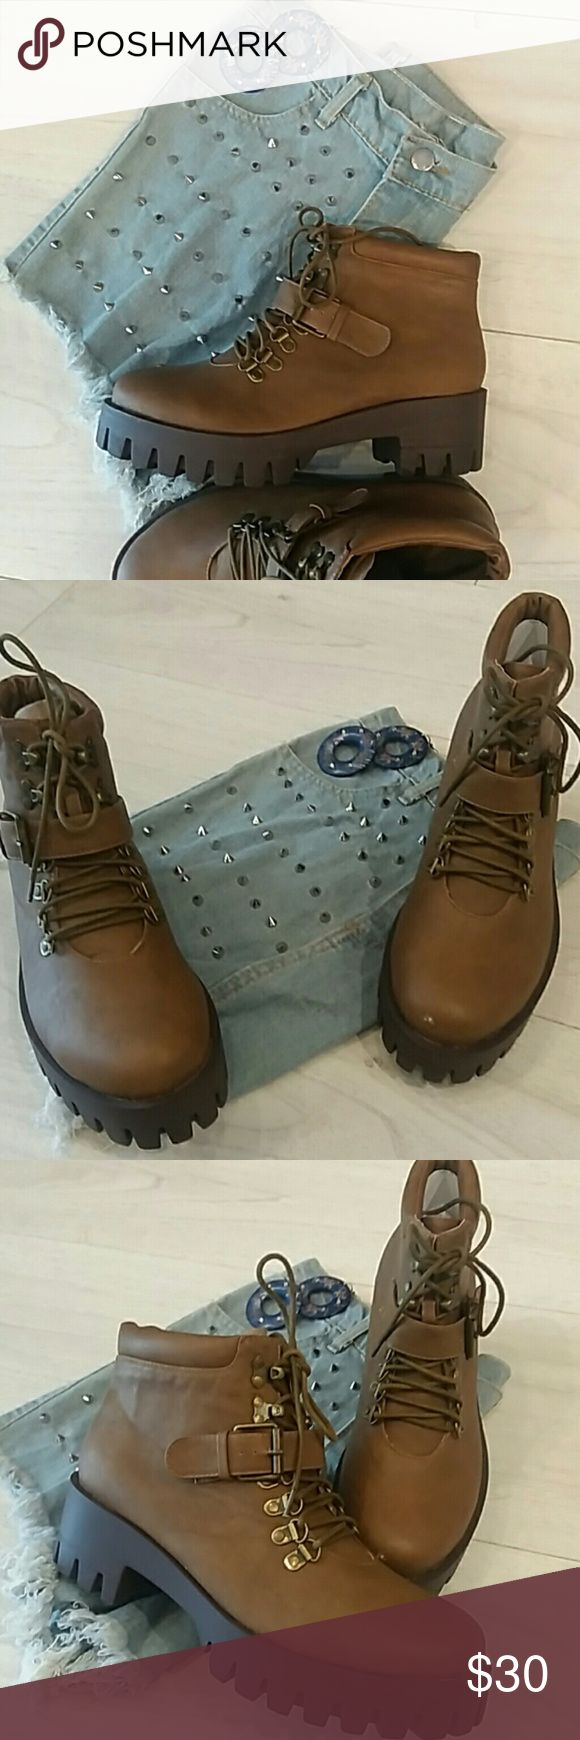 LAST PAIR Timberland Style Great for daily walking, site-seeing and even light hiking/camping. Eurotrip ready! Very stylish with jean shorts or sporty attire.  Style similar to Timberlands or Dr. Martens  Man-made materials and synthetic sole. Priced for a quick sale Shoes